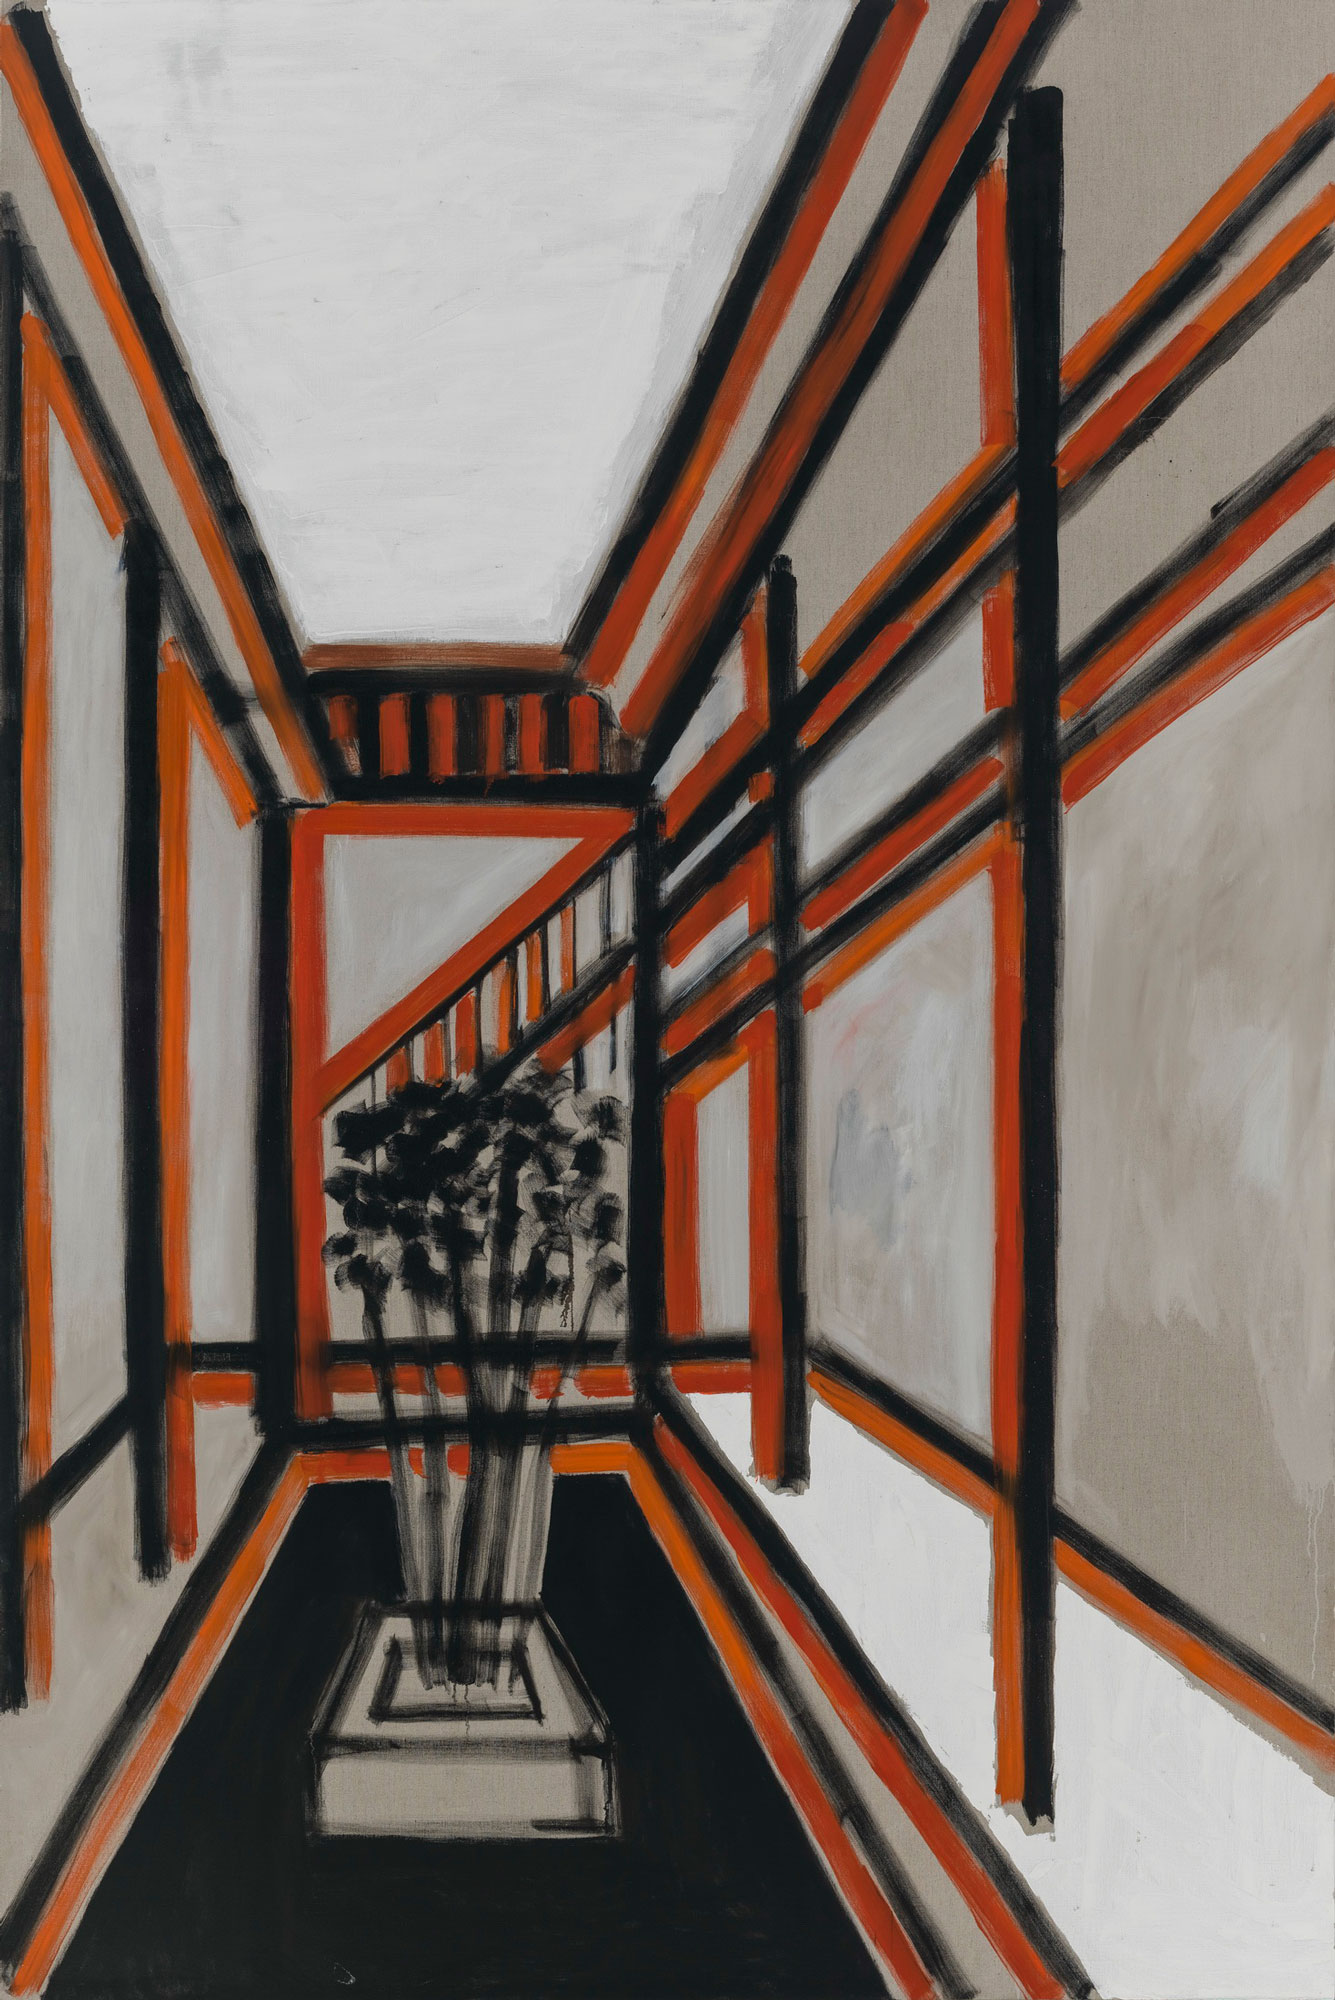 ZHAO GANG .  A Corridor of the Classroom,  2014. Oil on canvas. 110 1/4 x 78 3/4 inches.  Courtesy of Frank F. Yang Foundation, Guangzhou